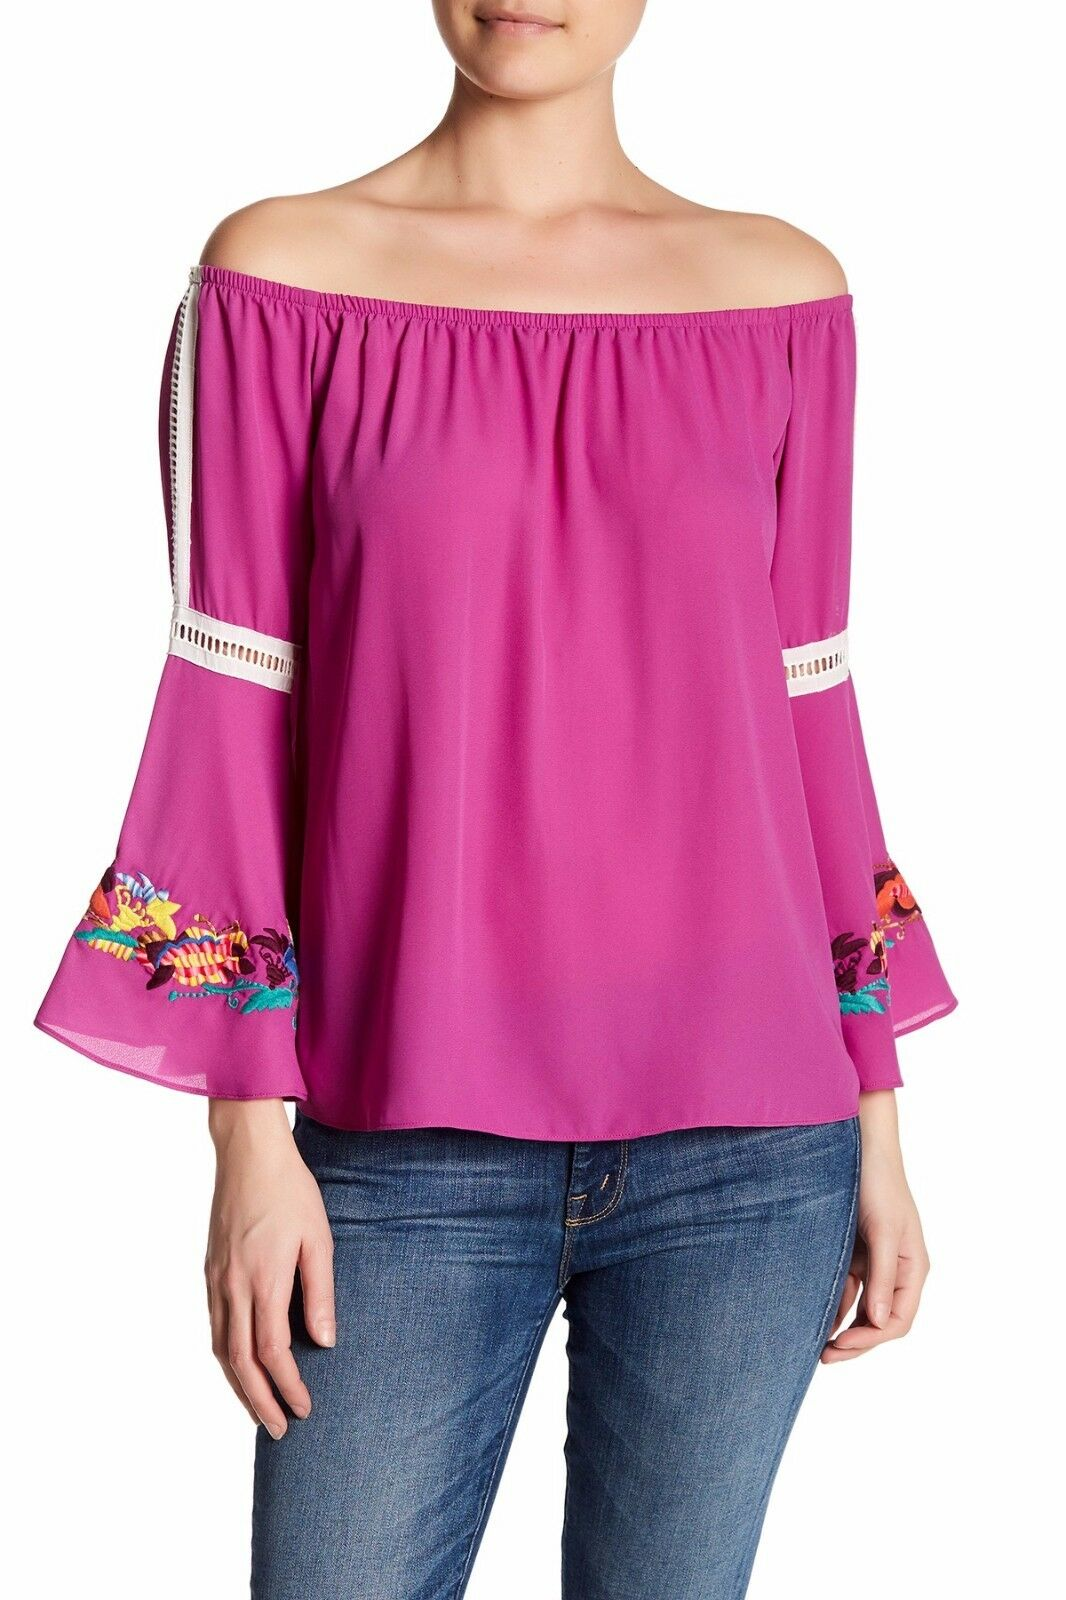 VaVa by Joy Han Open Neckline Top Dark Rosa Embroiderot Bell Sleeves NWT  S